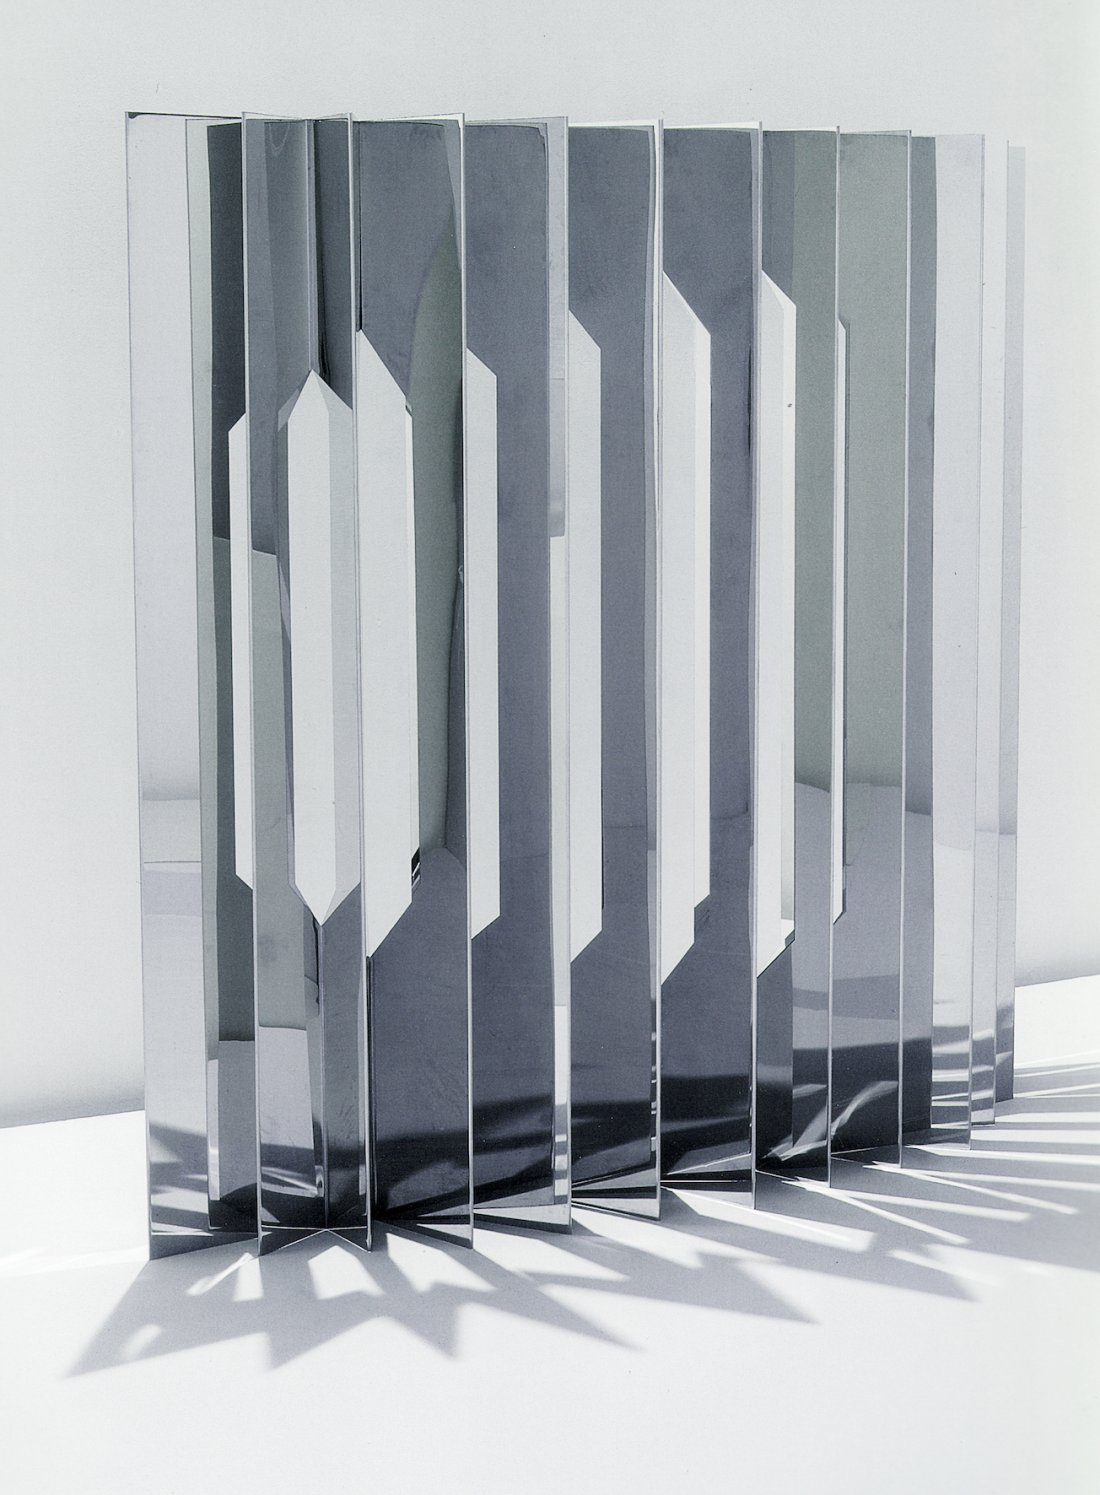 Aranda\Lasch, Camouflage Screen, 2006